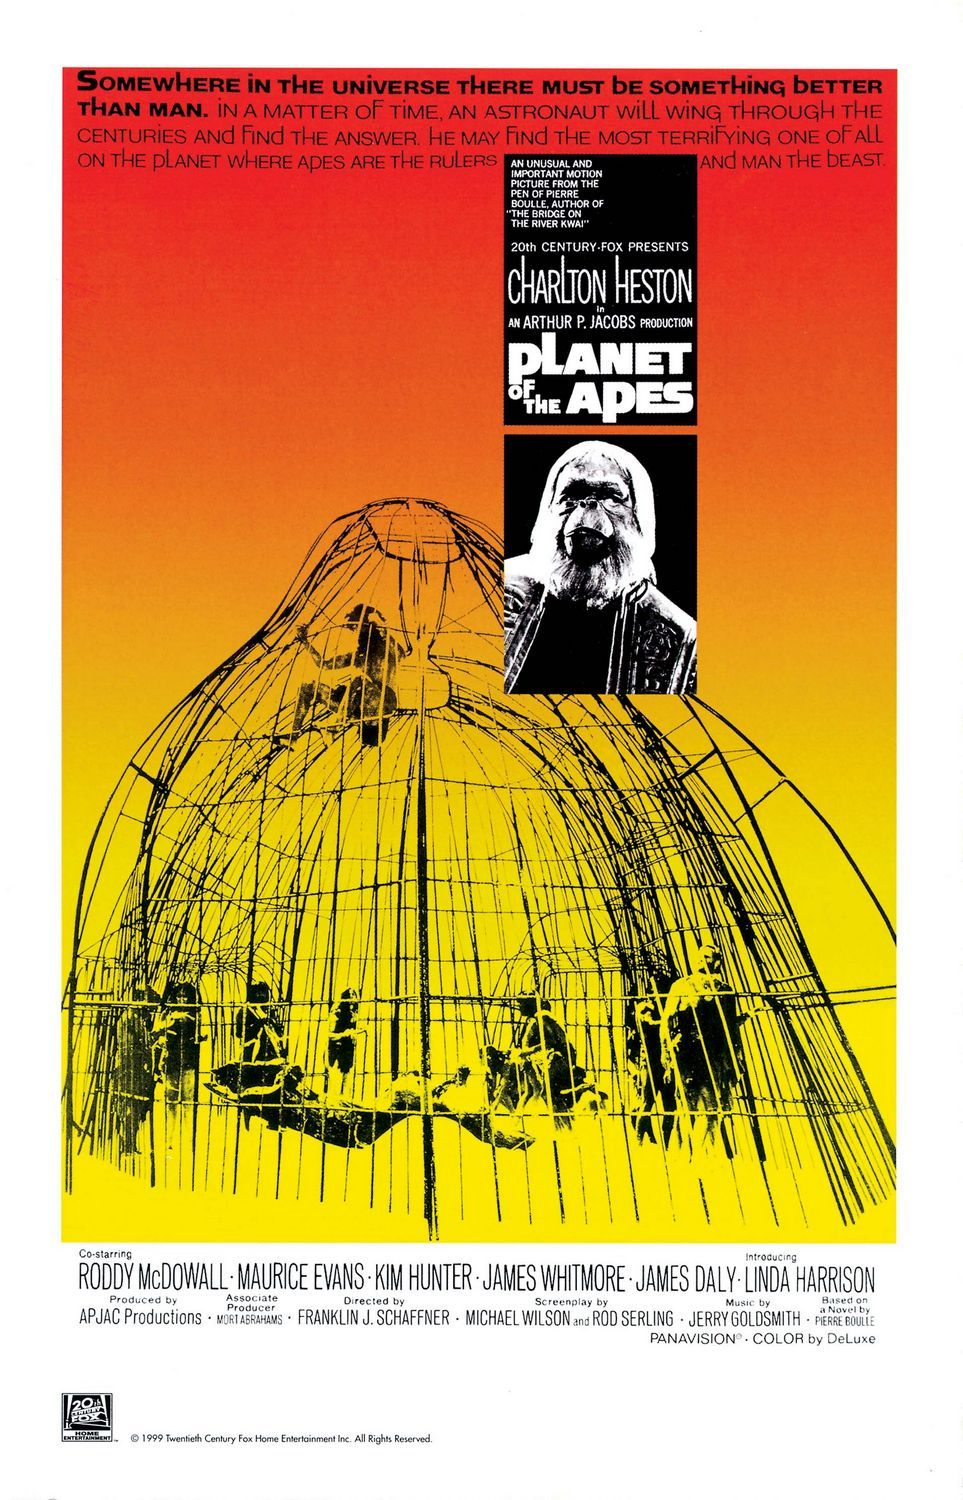 planet of the apes review the 1968 film stars charlton